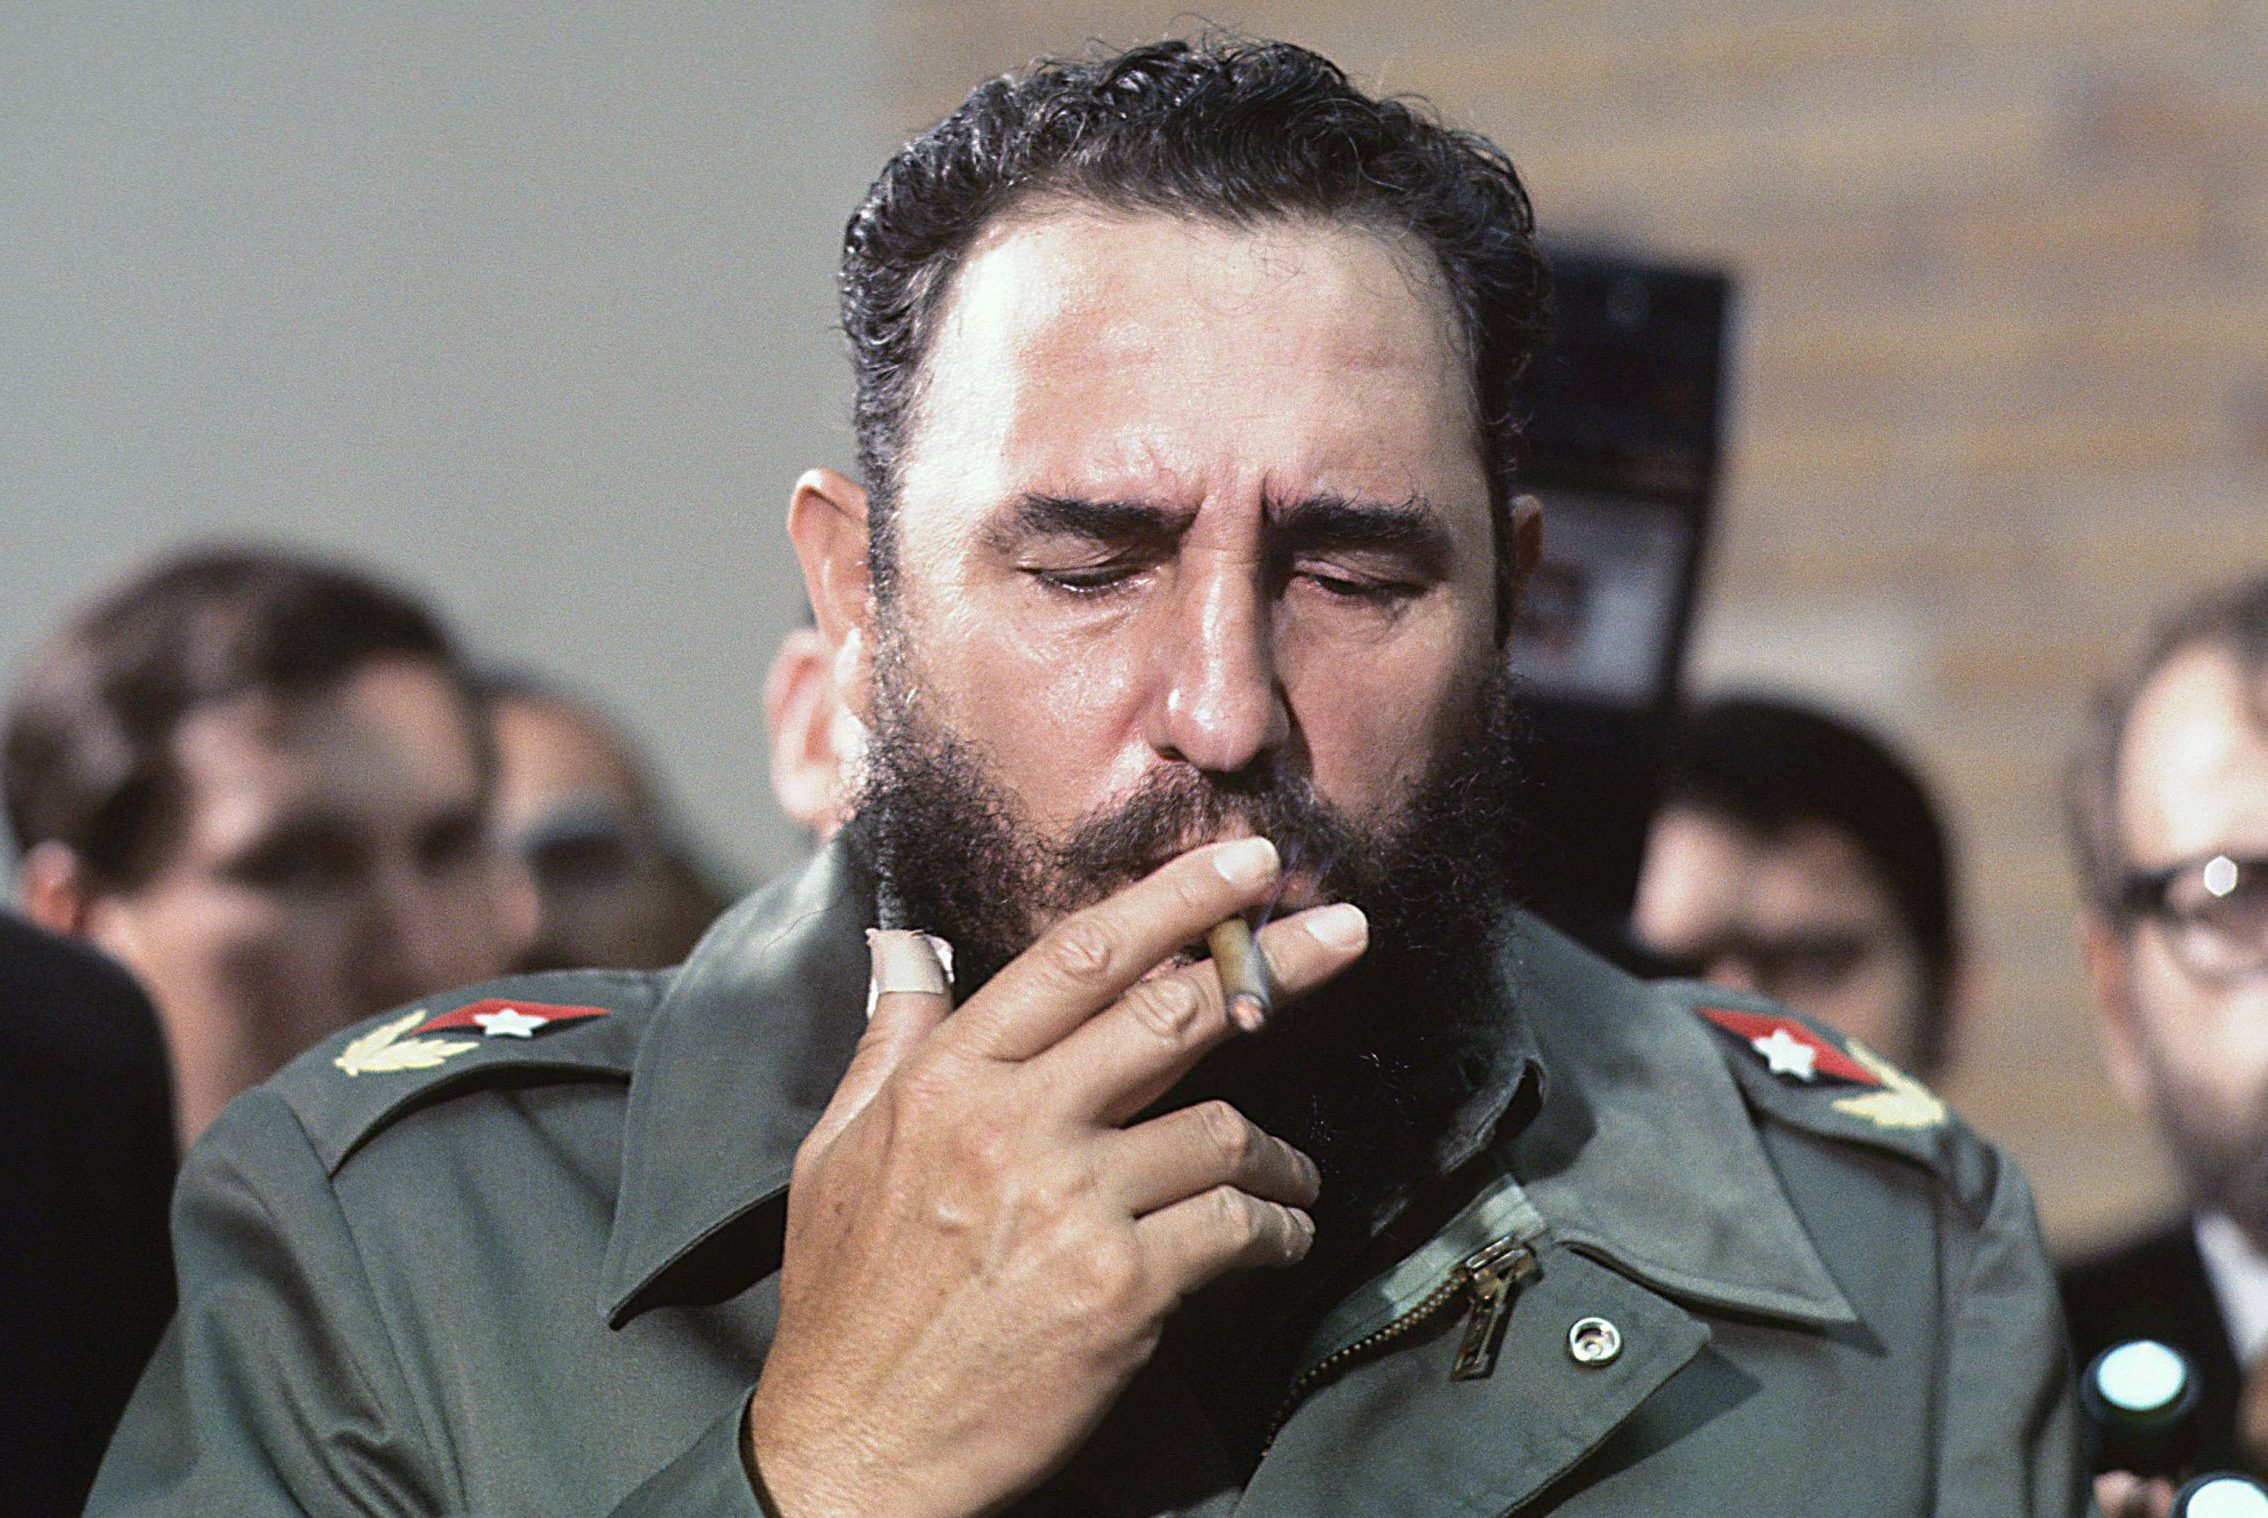 Mandatory Credit: Photo by Gallo Images/REX/Shutterstock (1769927a) Fidel Castro Fidel Castro, Havanna, Cuba - 01 May 1975 Fidel Castro during the visit of Senator McGovern to Havanna